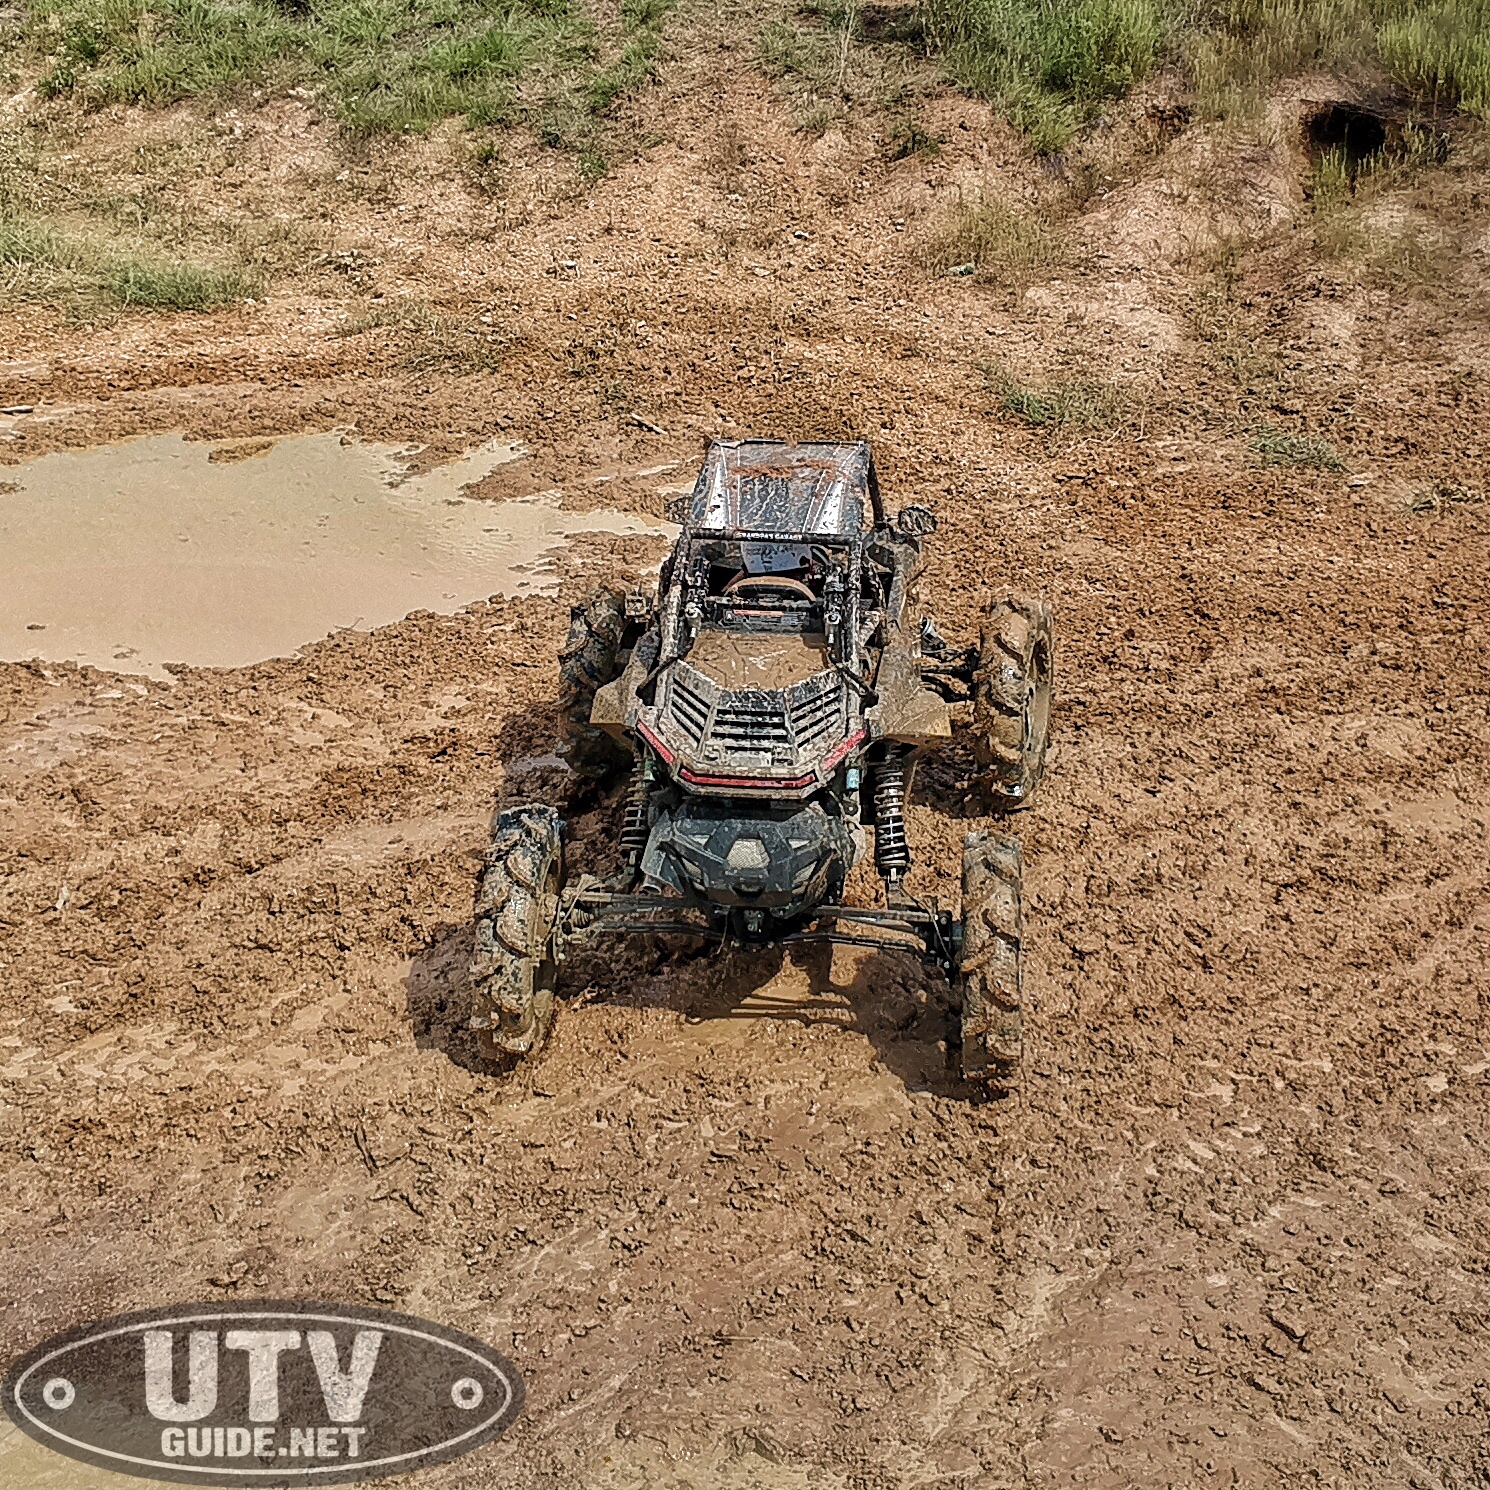 Polaris Rzr Rs1 Mud Build By Rzr Life Utv Guide